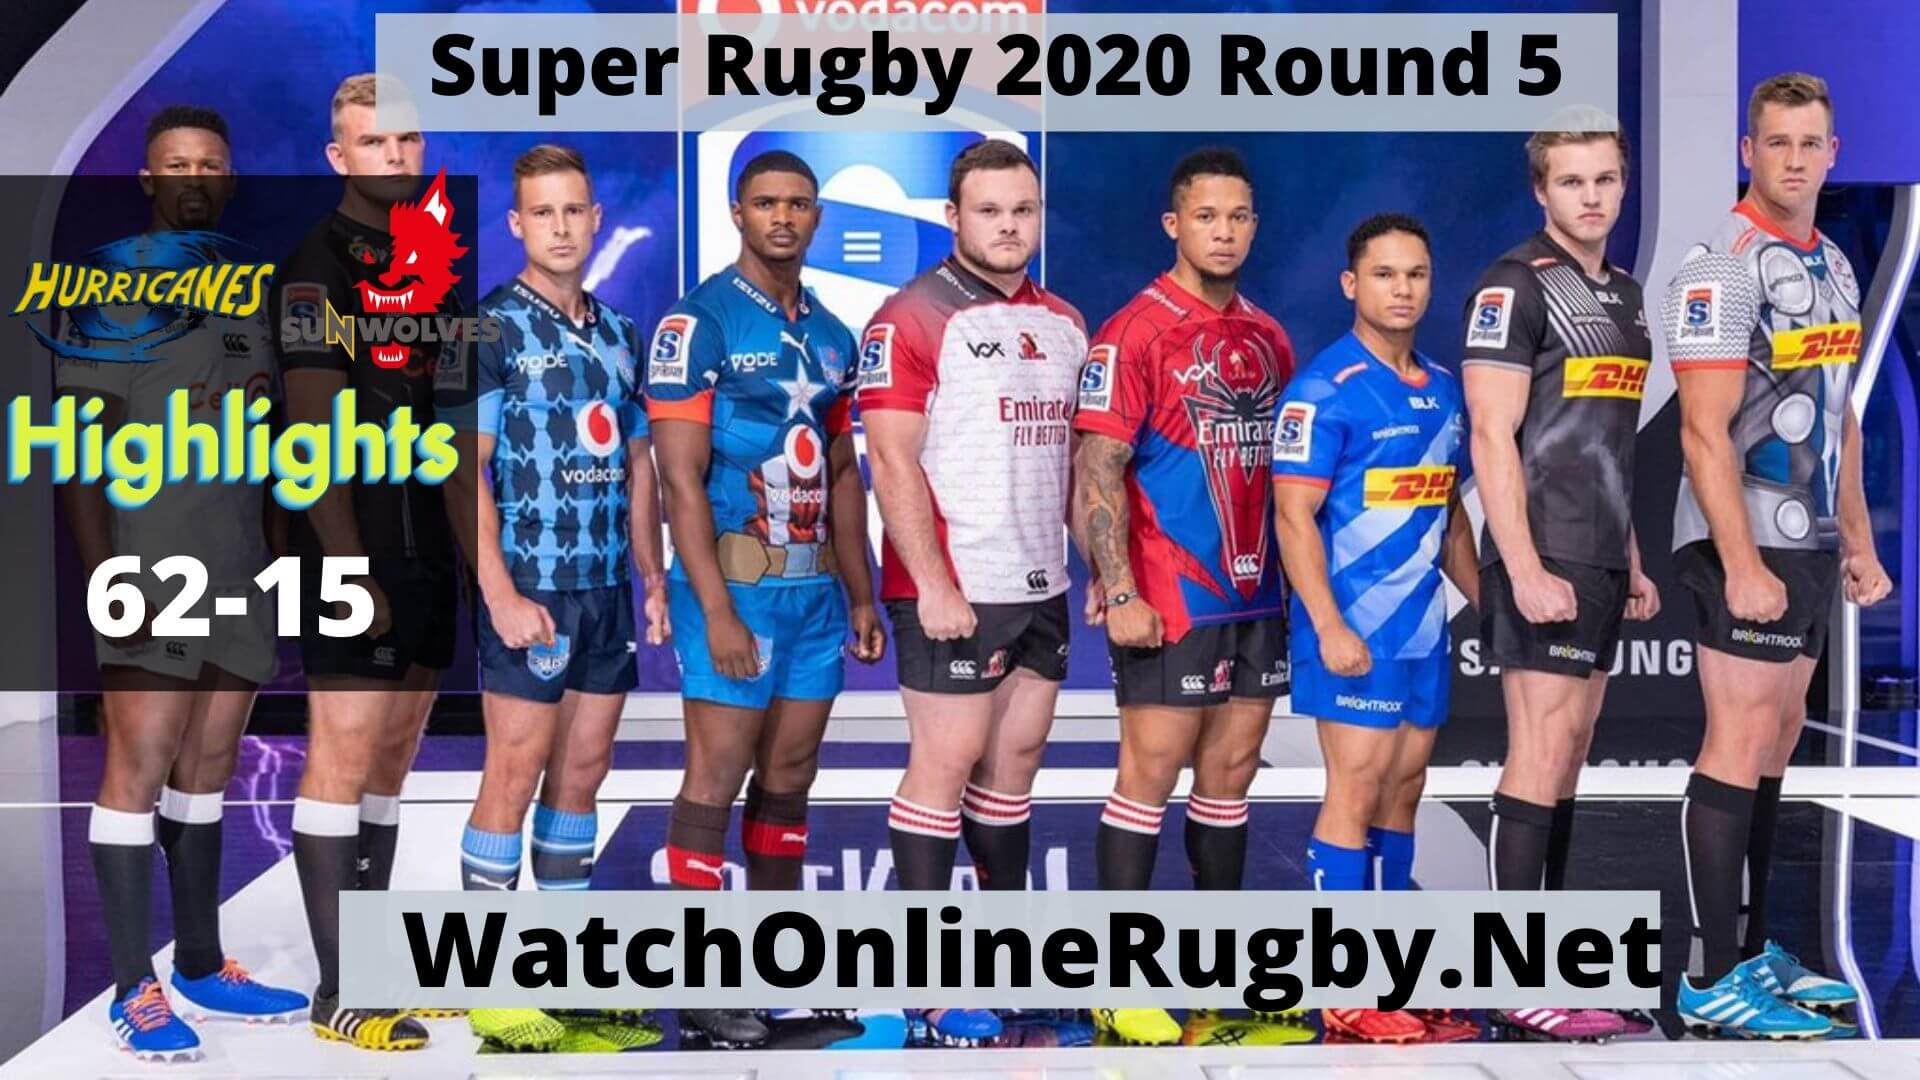 Hurricanes Vs Sunwolves Highlights 2020 Super Rugby Rd 5